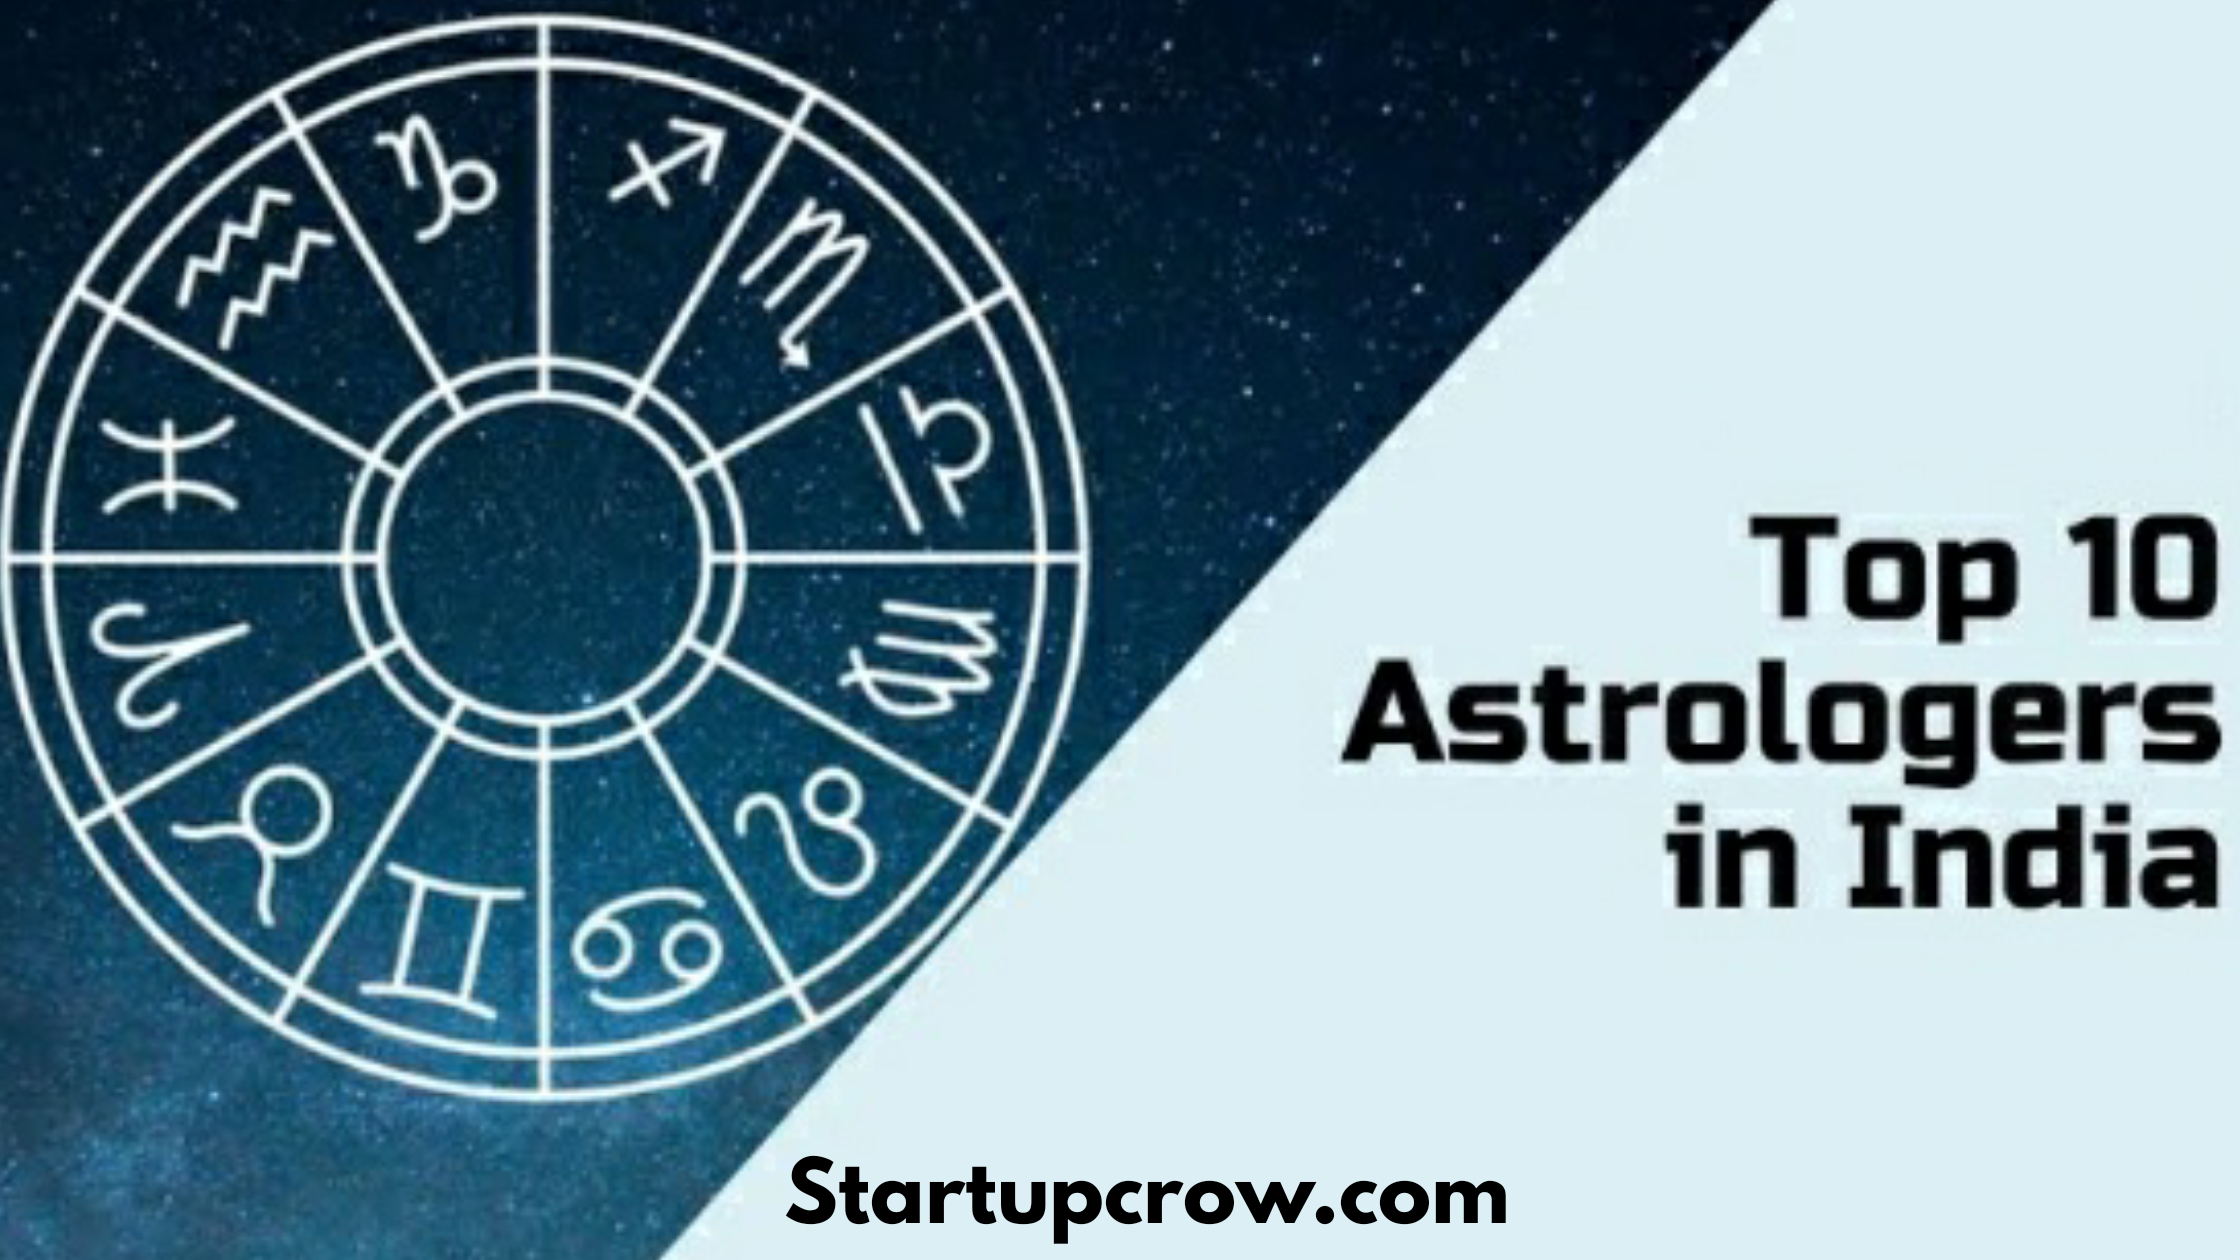 Best Astrologers in India 2021